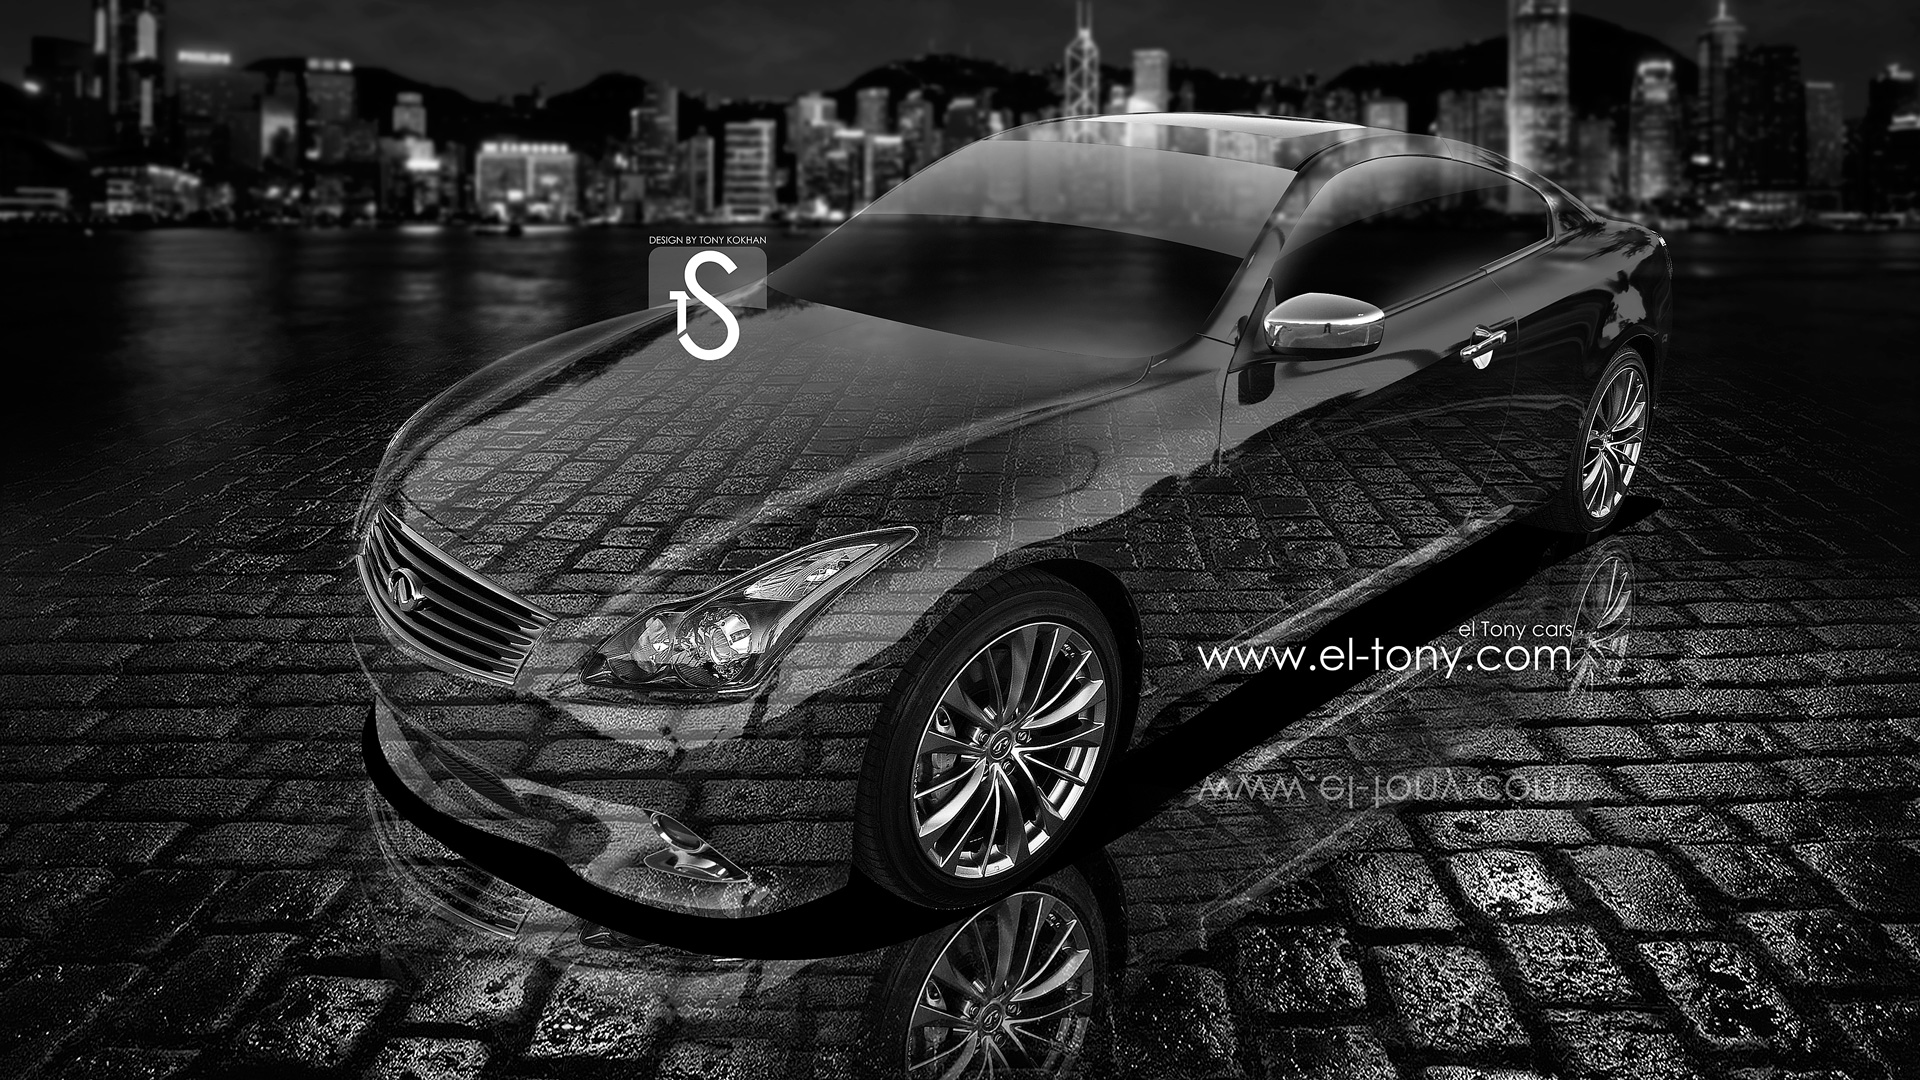 Attrayant Infiniti G37 Crystal City Car 2013 HD Wallpapers